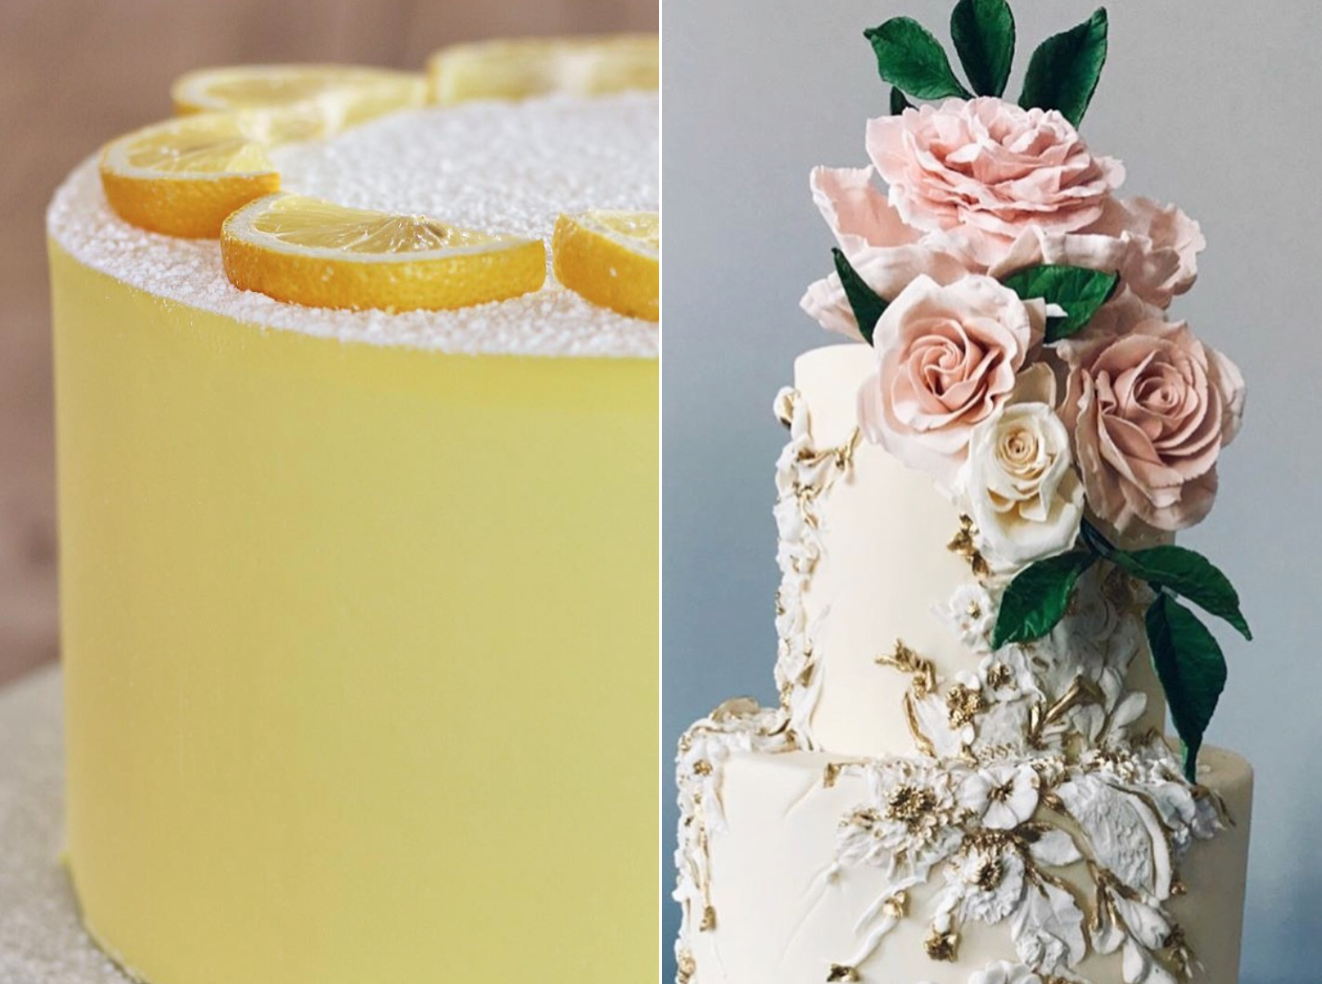 10 Cake-Filled Instagram Accounts That Will Make You Swoon